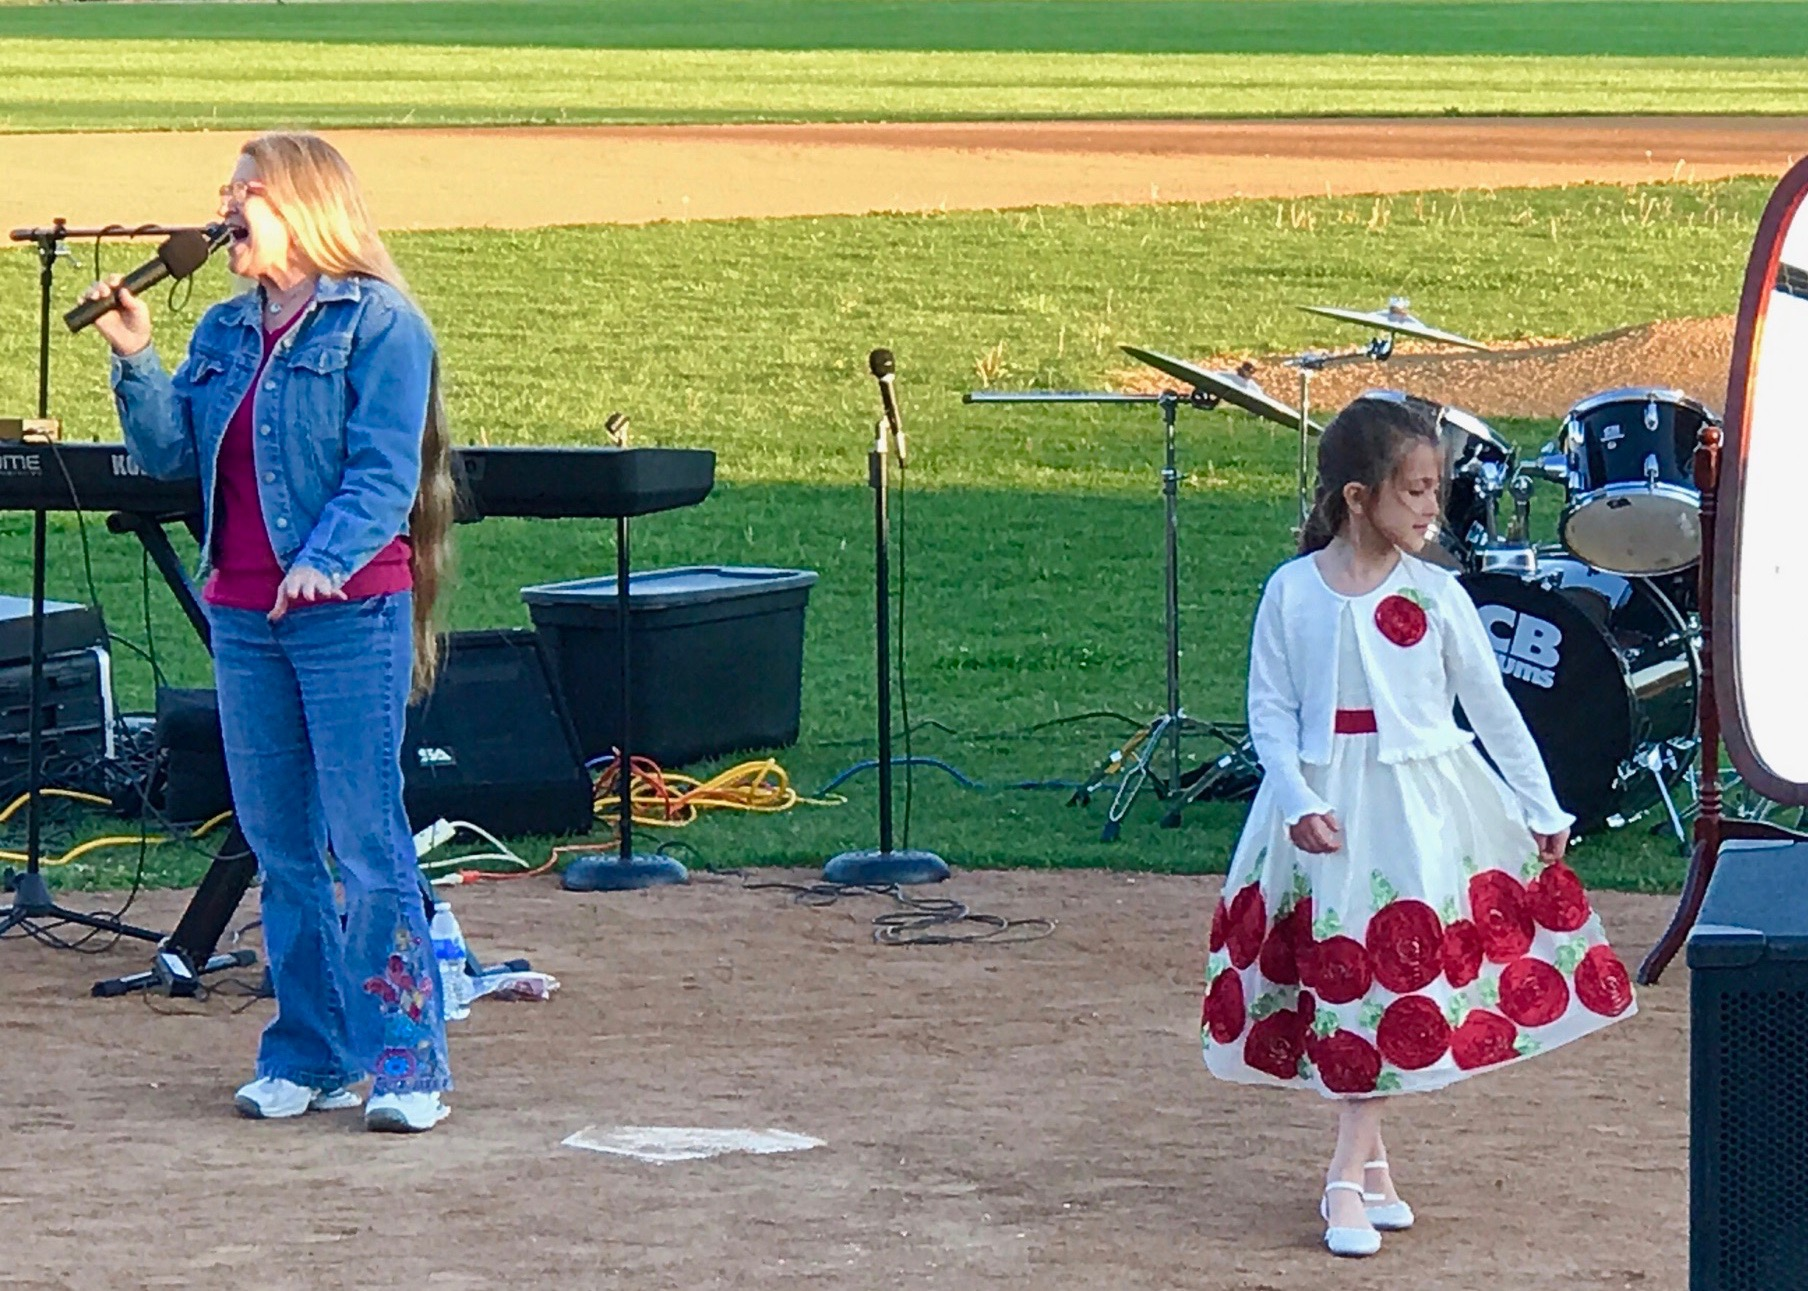 "Poppy sang the song ""Priceless"" by For King and Country.  My daughter Rayna had a white dress on and danced along.  This was such a beautiful time declaring God's love over the crowd!"